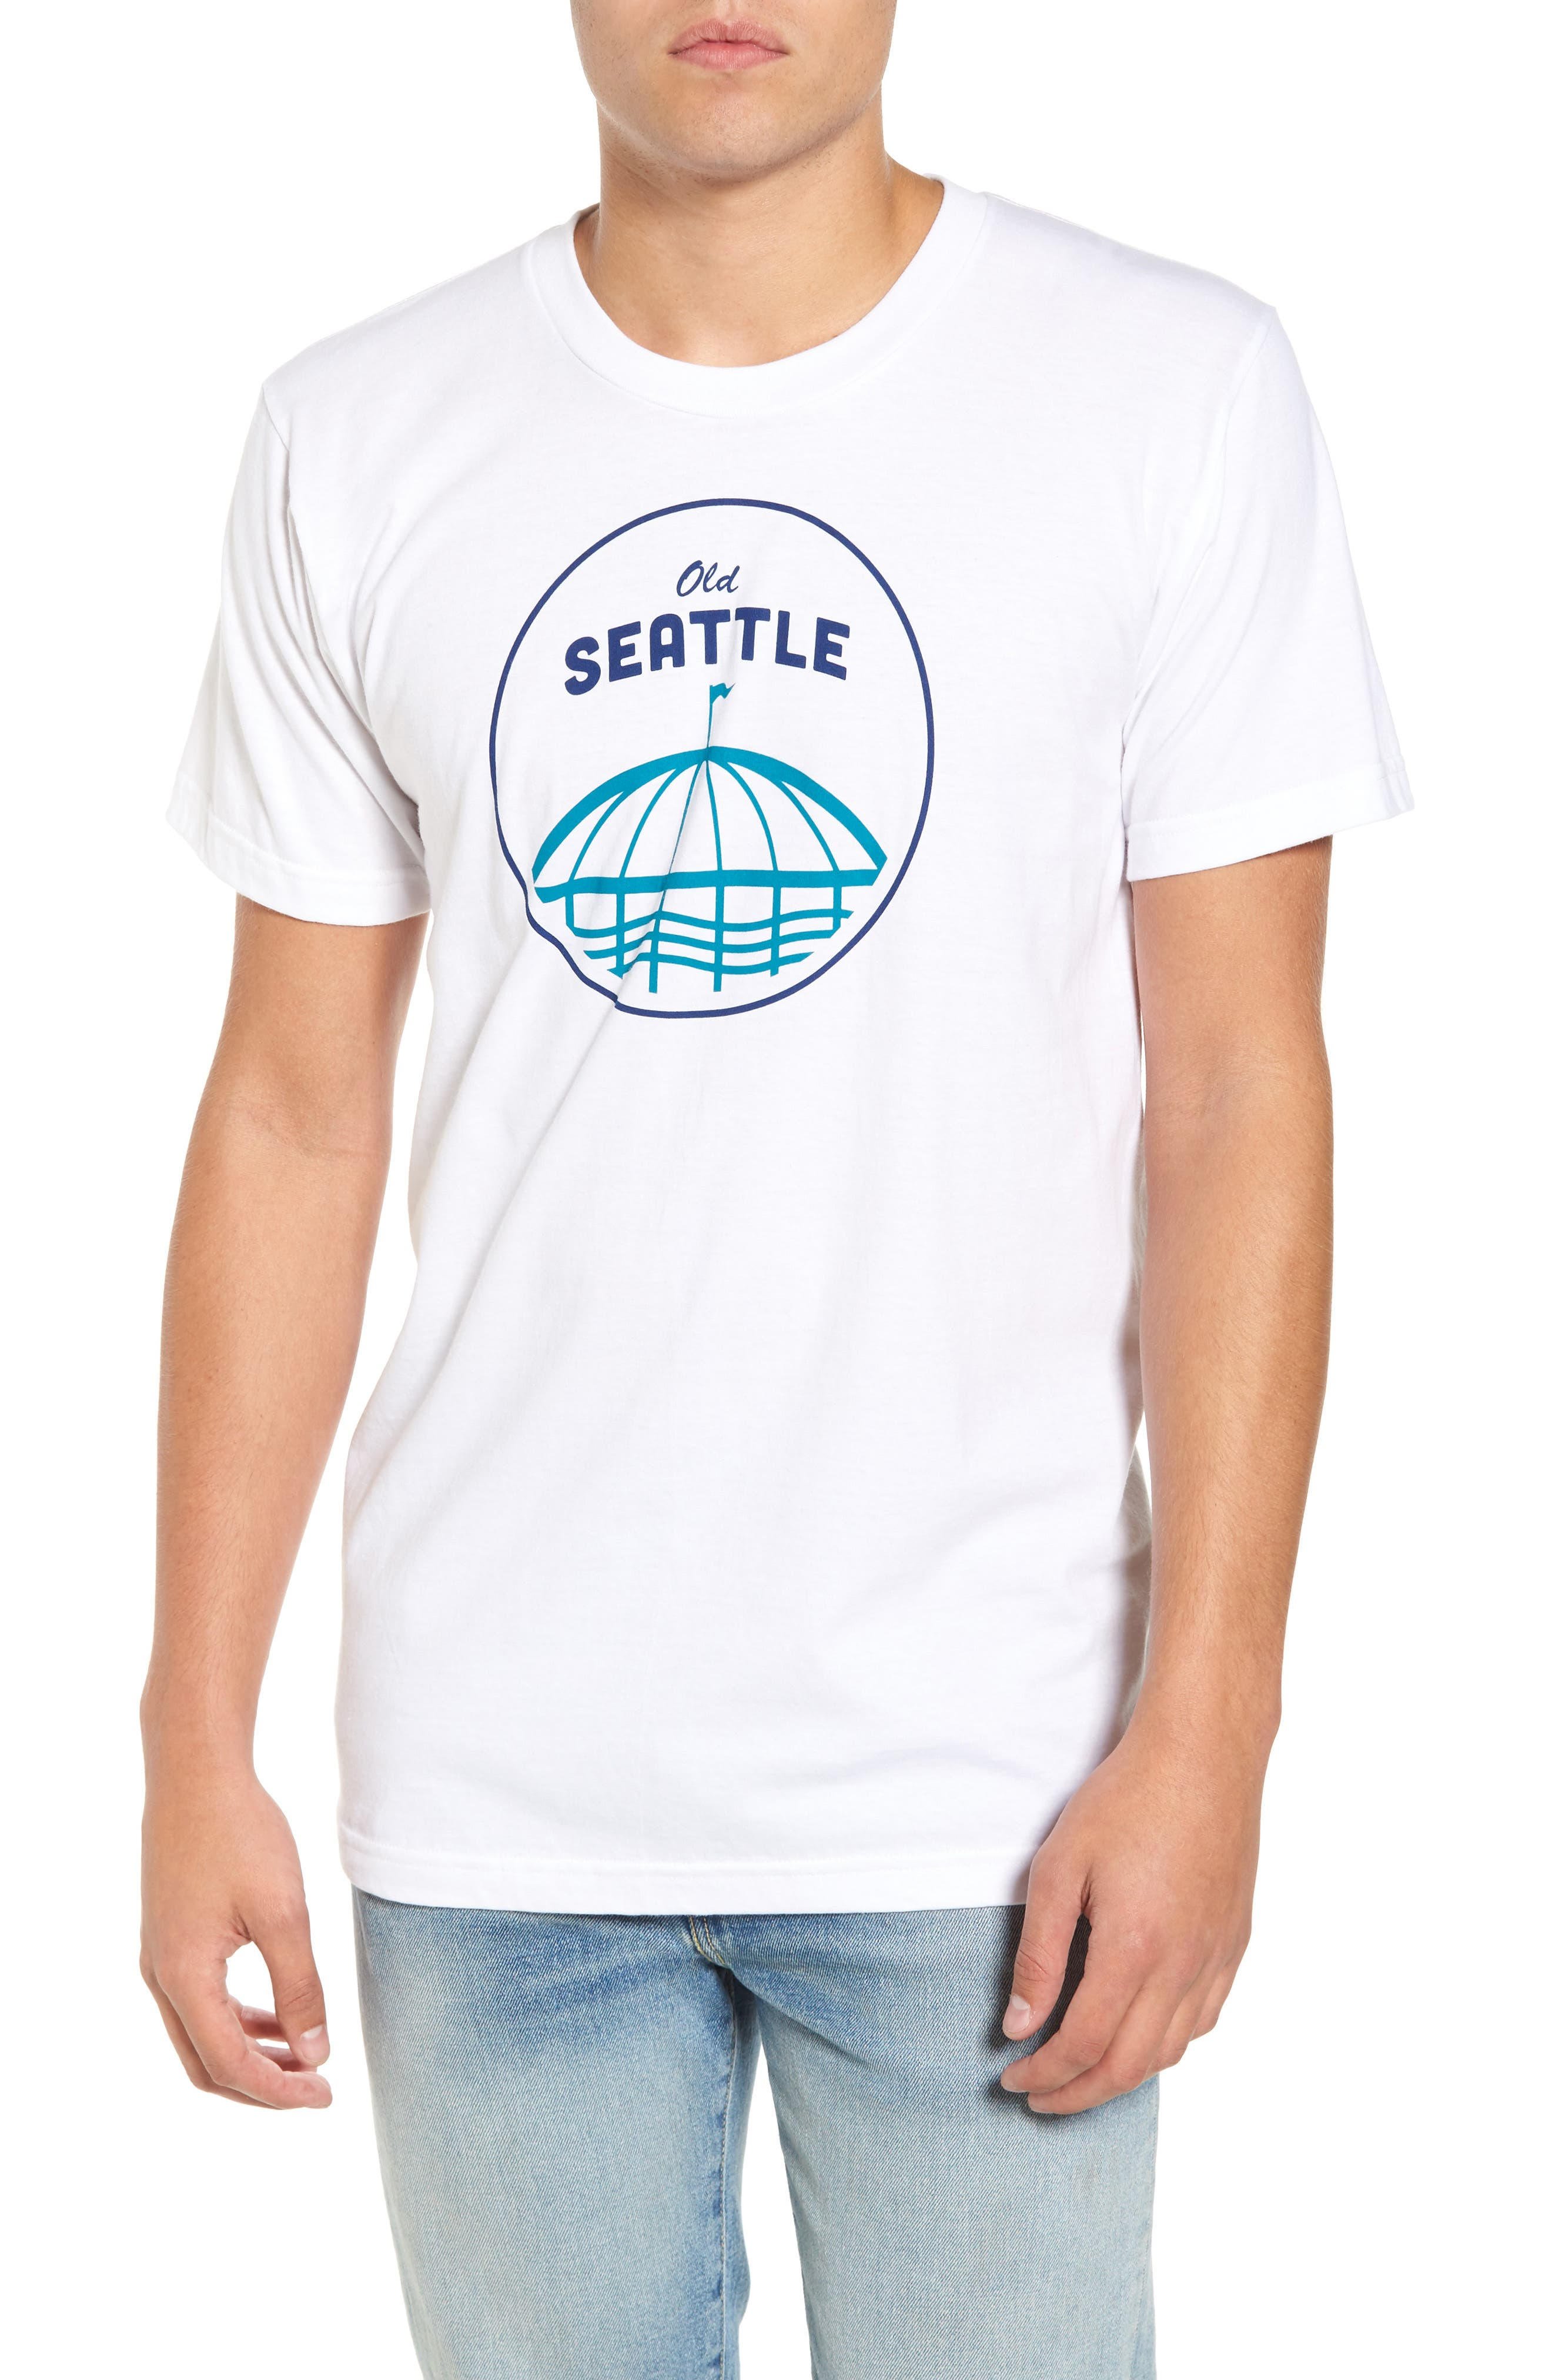 Main Image - Casual Industrees Old Seattle Graphic T-Shirt